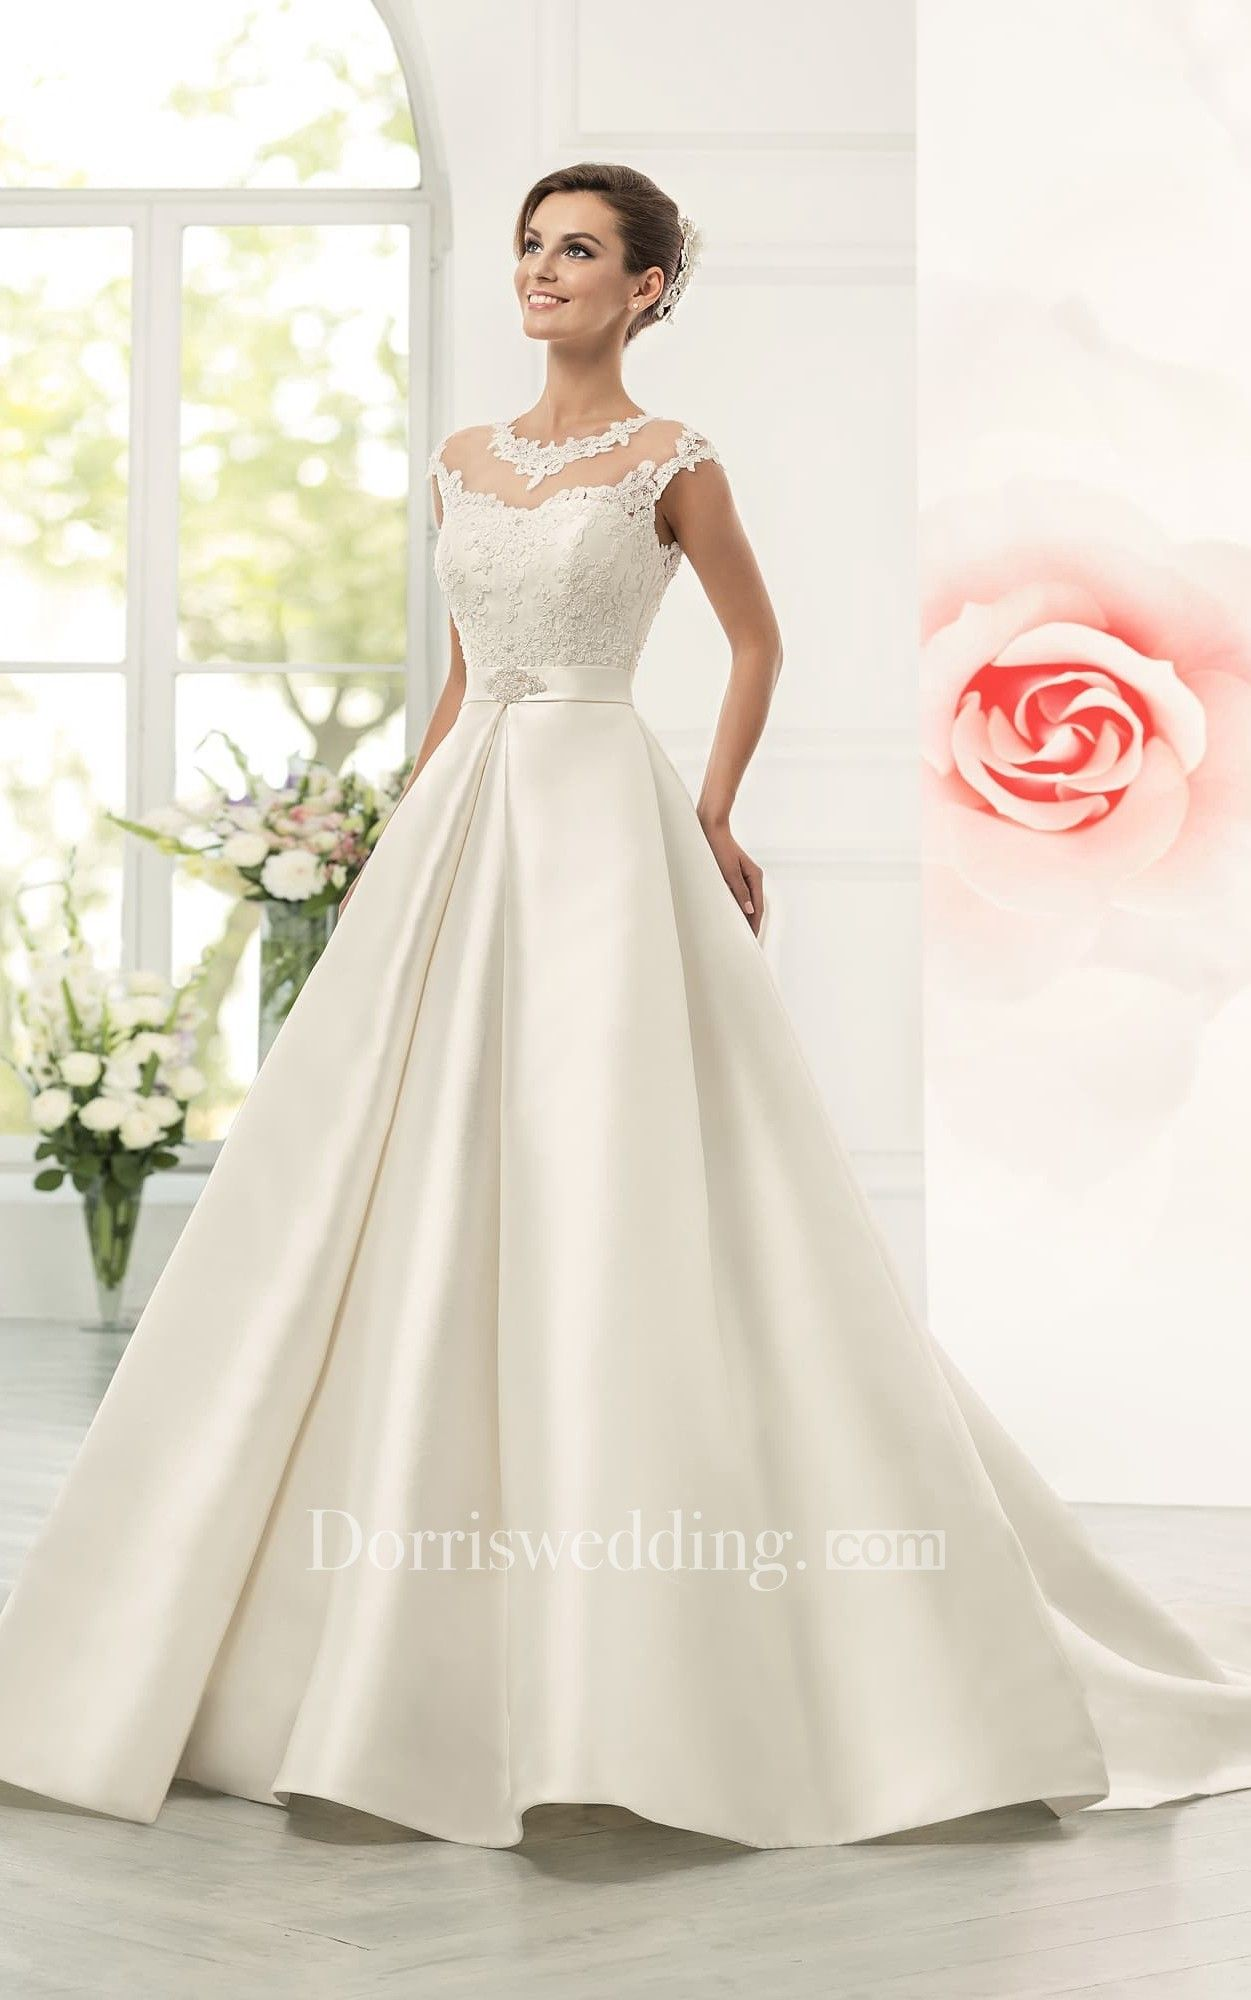 70d5d102b Jeweled Neck Cap Sleeve A-line Satin Wedding Dress With Lace Bodice ...